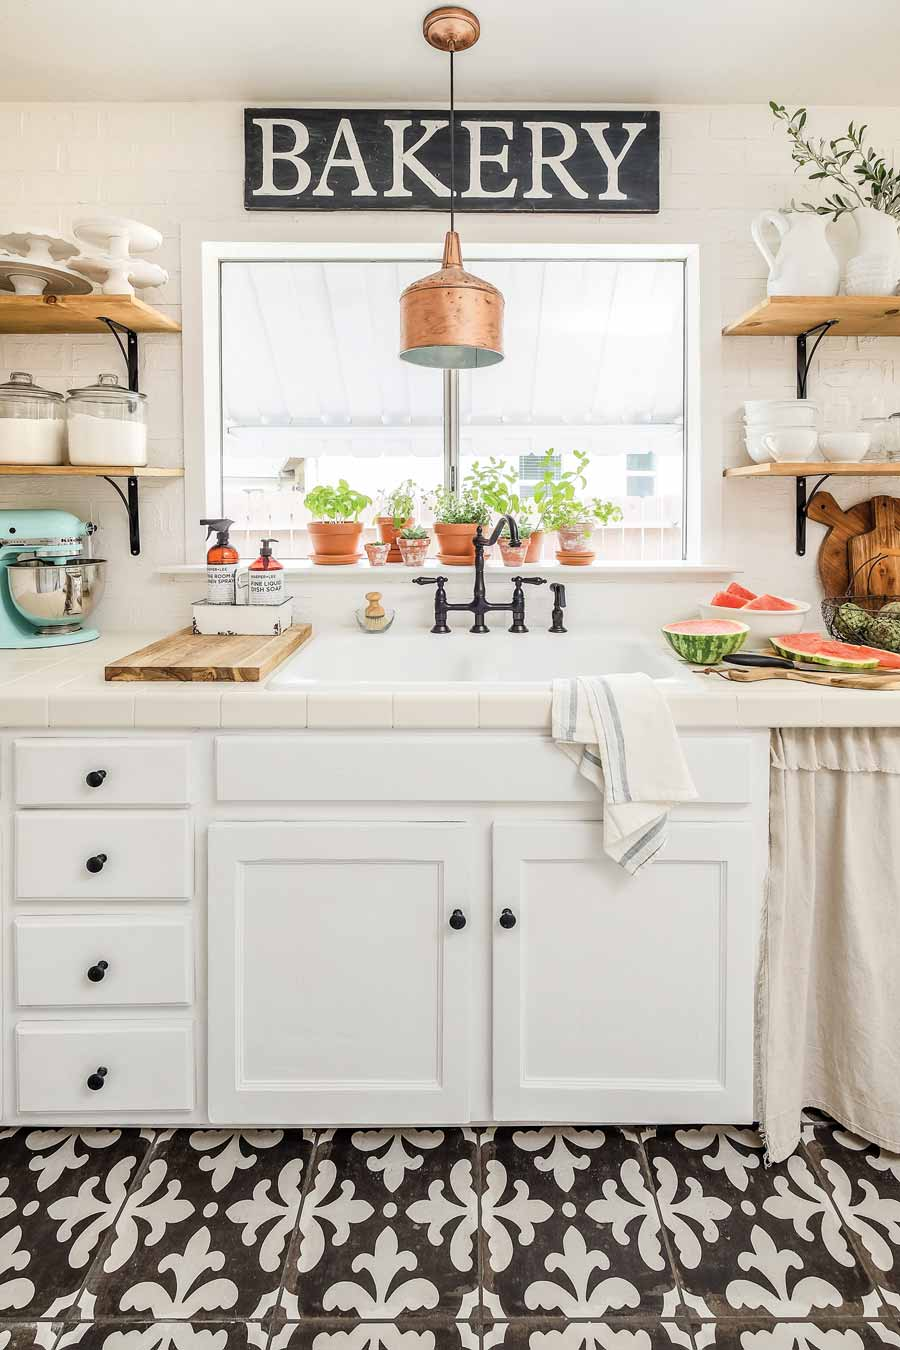 Farmhouse Kitchen: The 5 Essentials - American Farmhouse ...